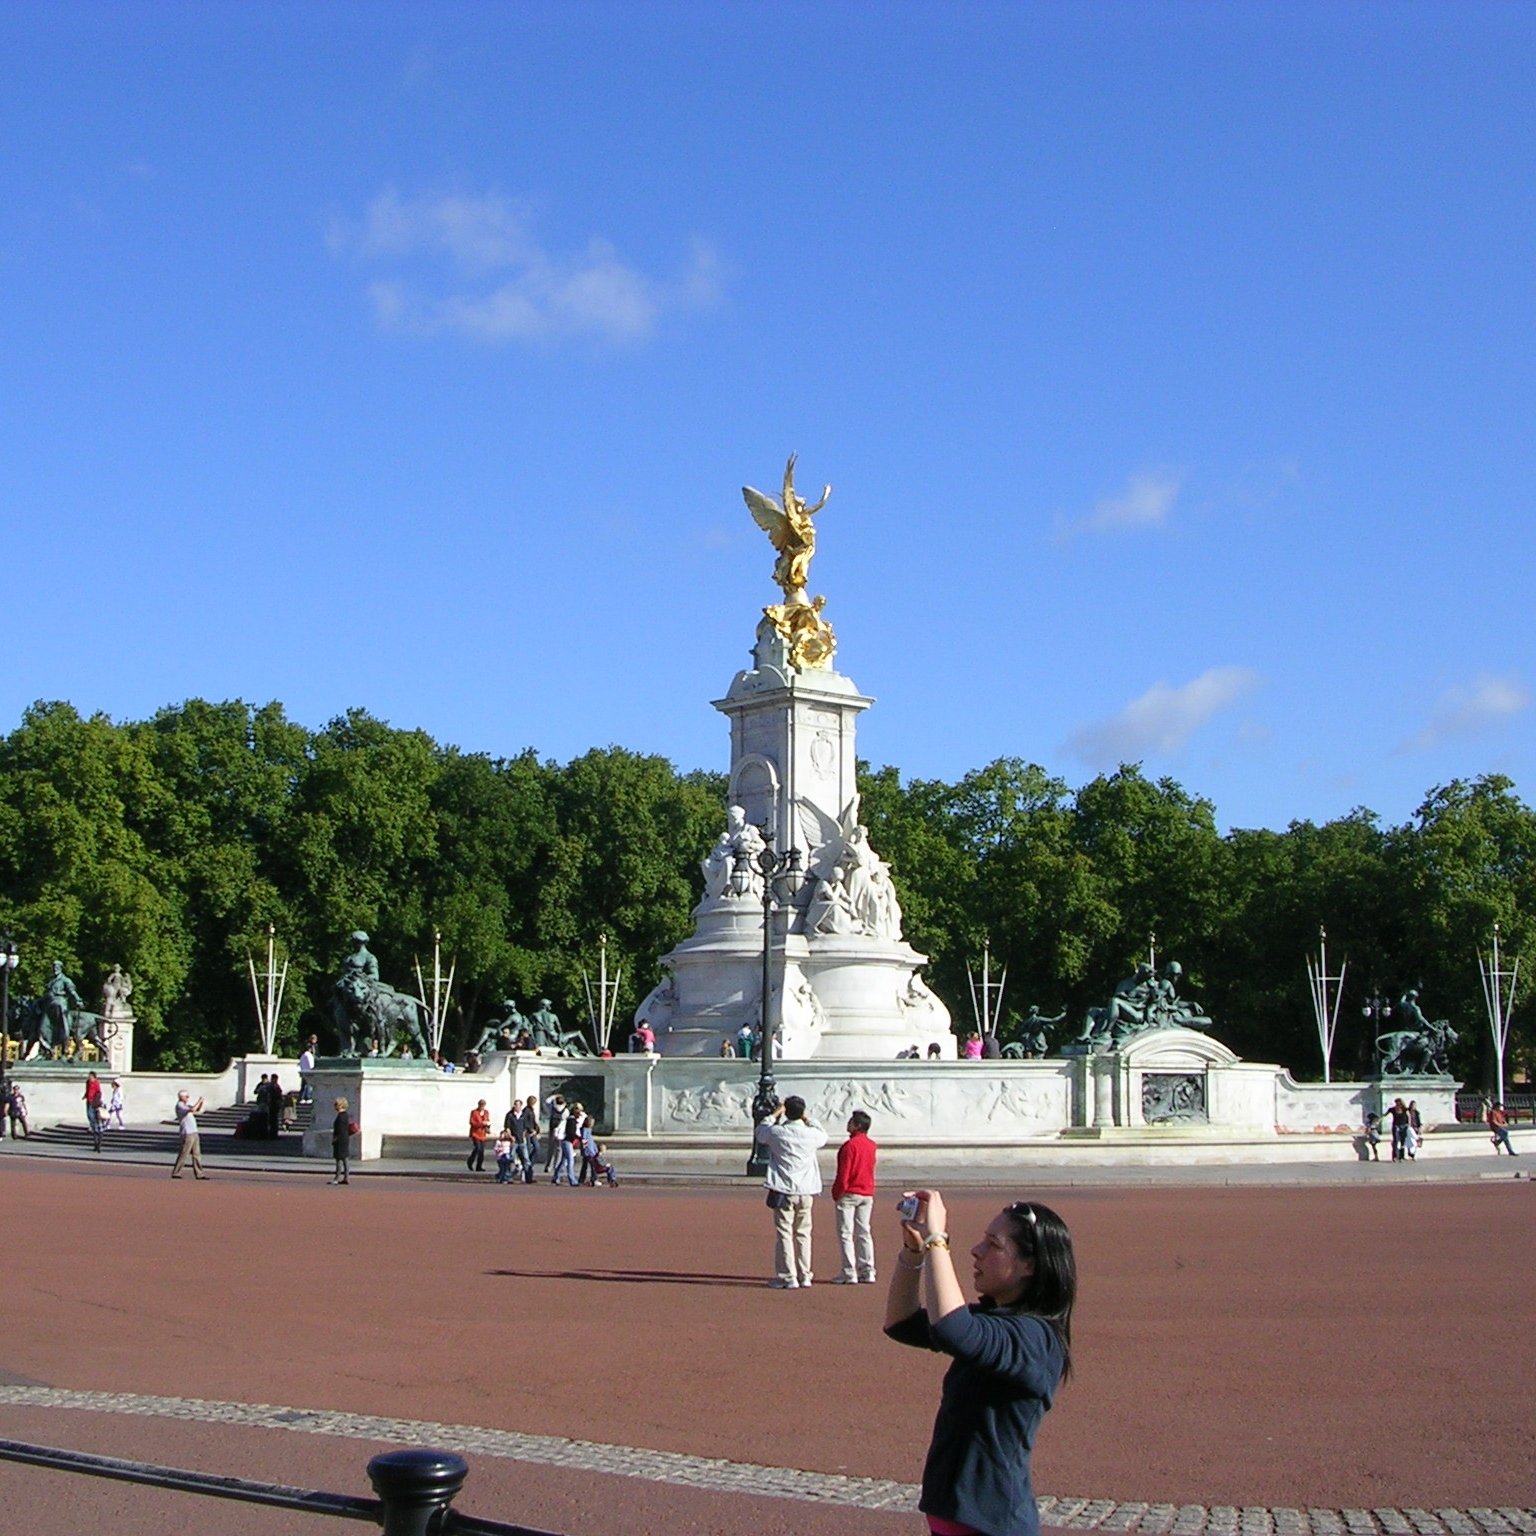 Top of the Mall, London by The Doubtful Traveller